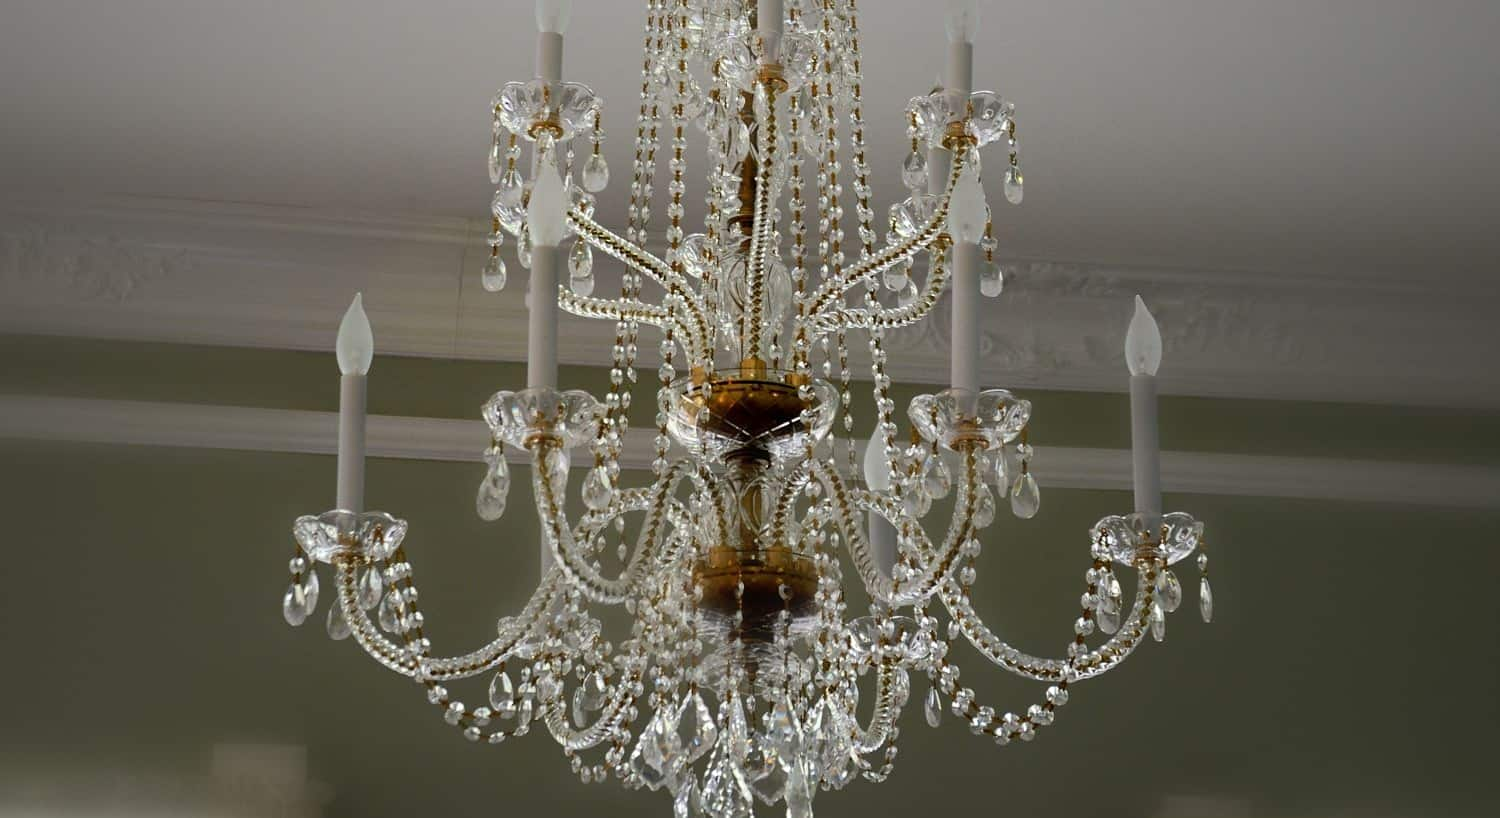 Elegant brass and crystal chandelier with candelabra bulbs